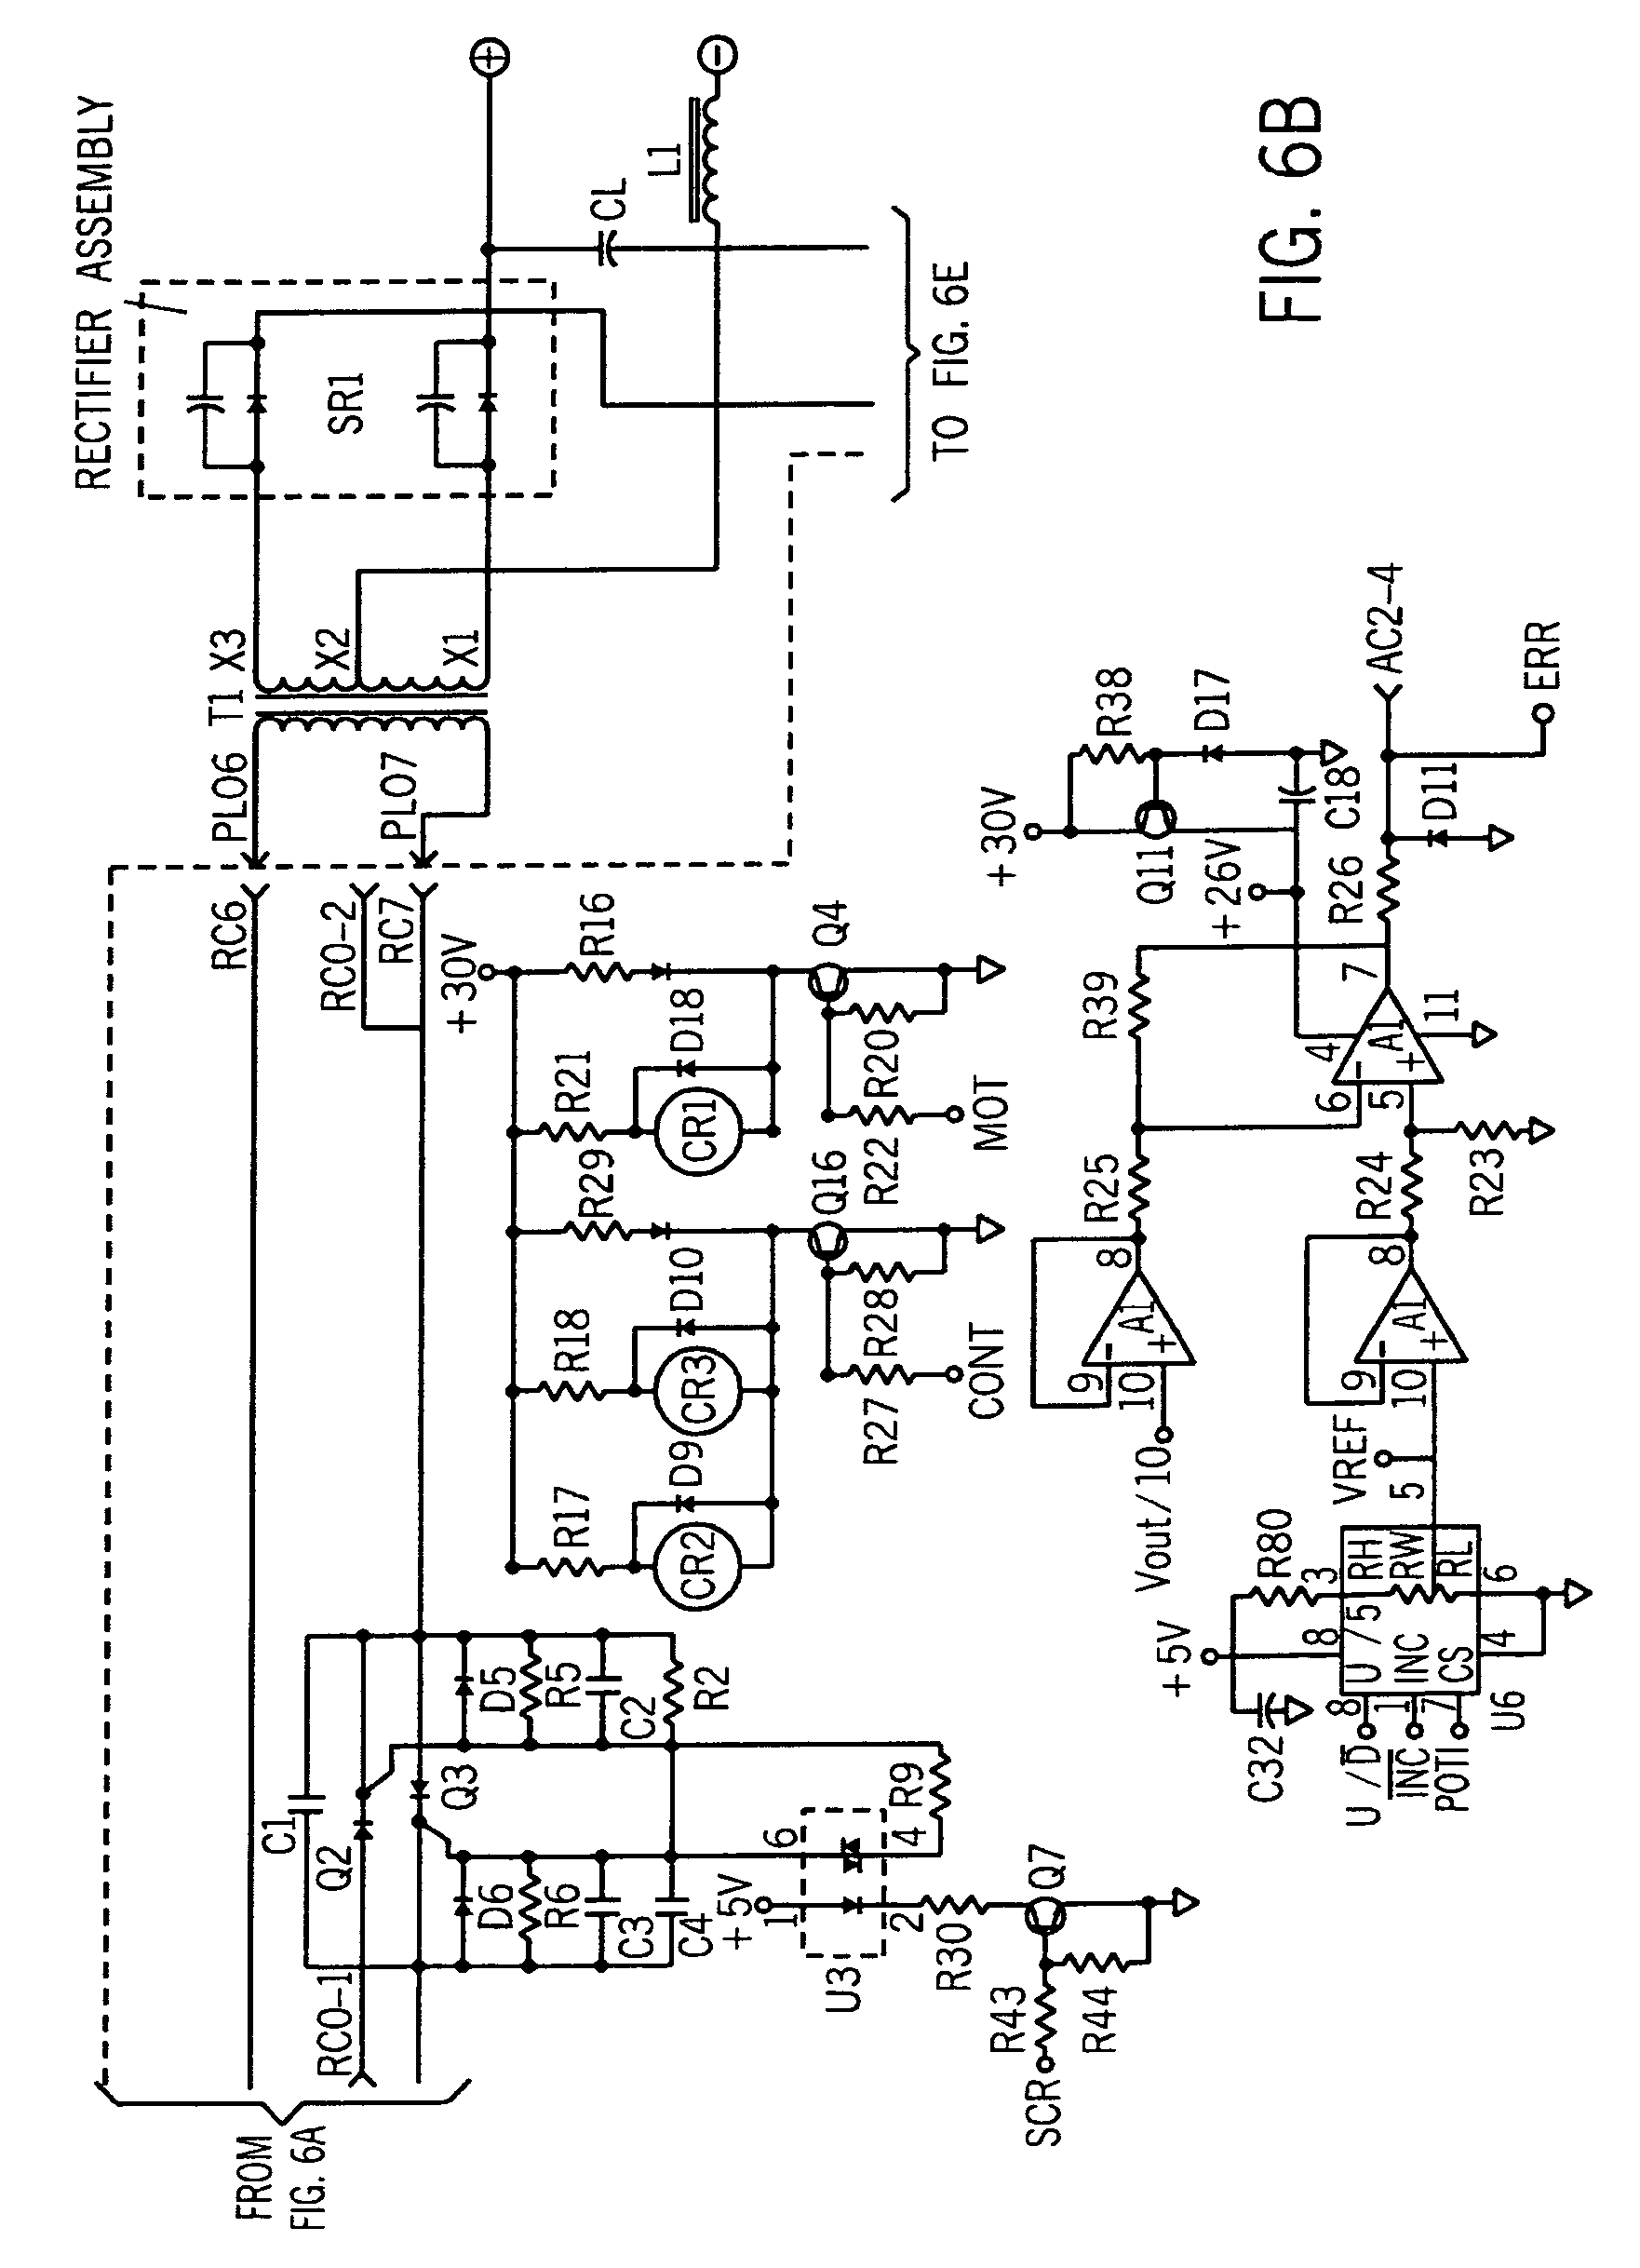 hobart welder wiring diagram er for hospital management system with relationship handler 120 dishwasher